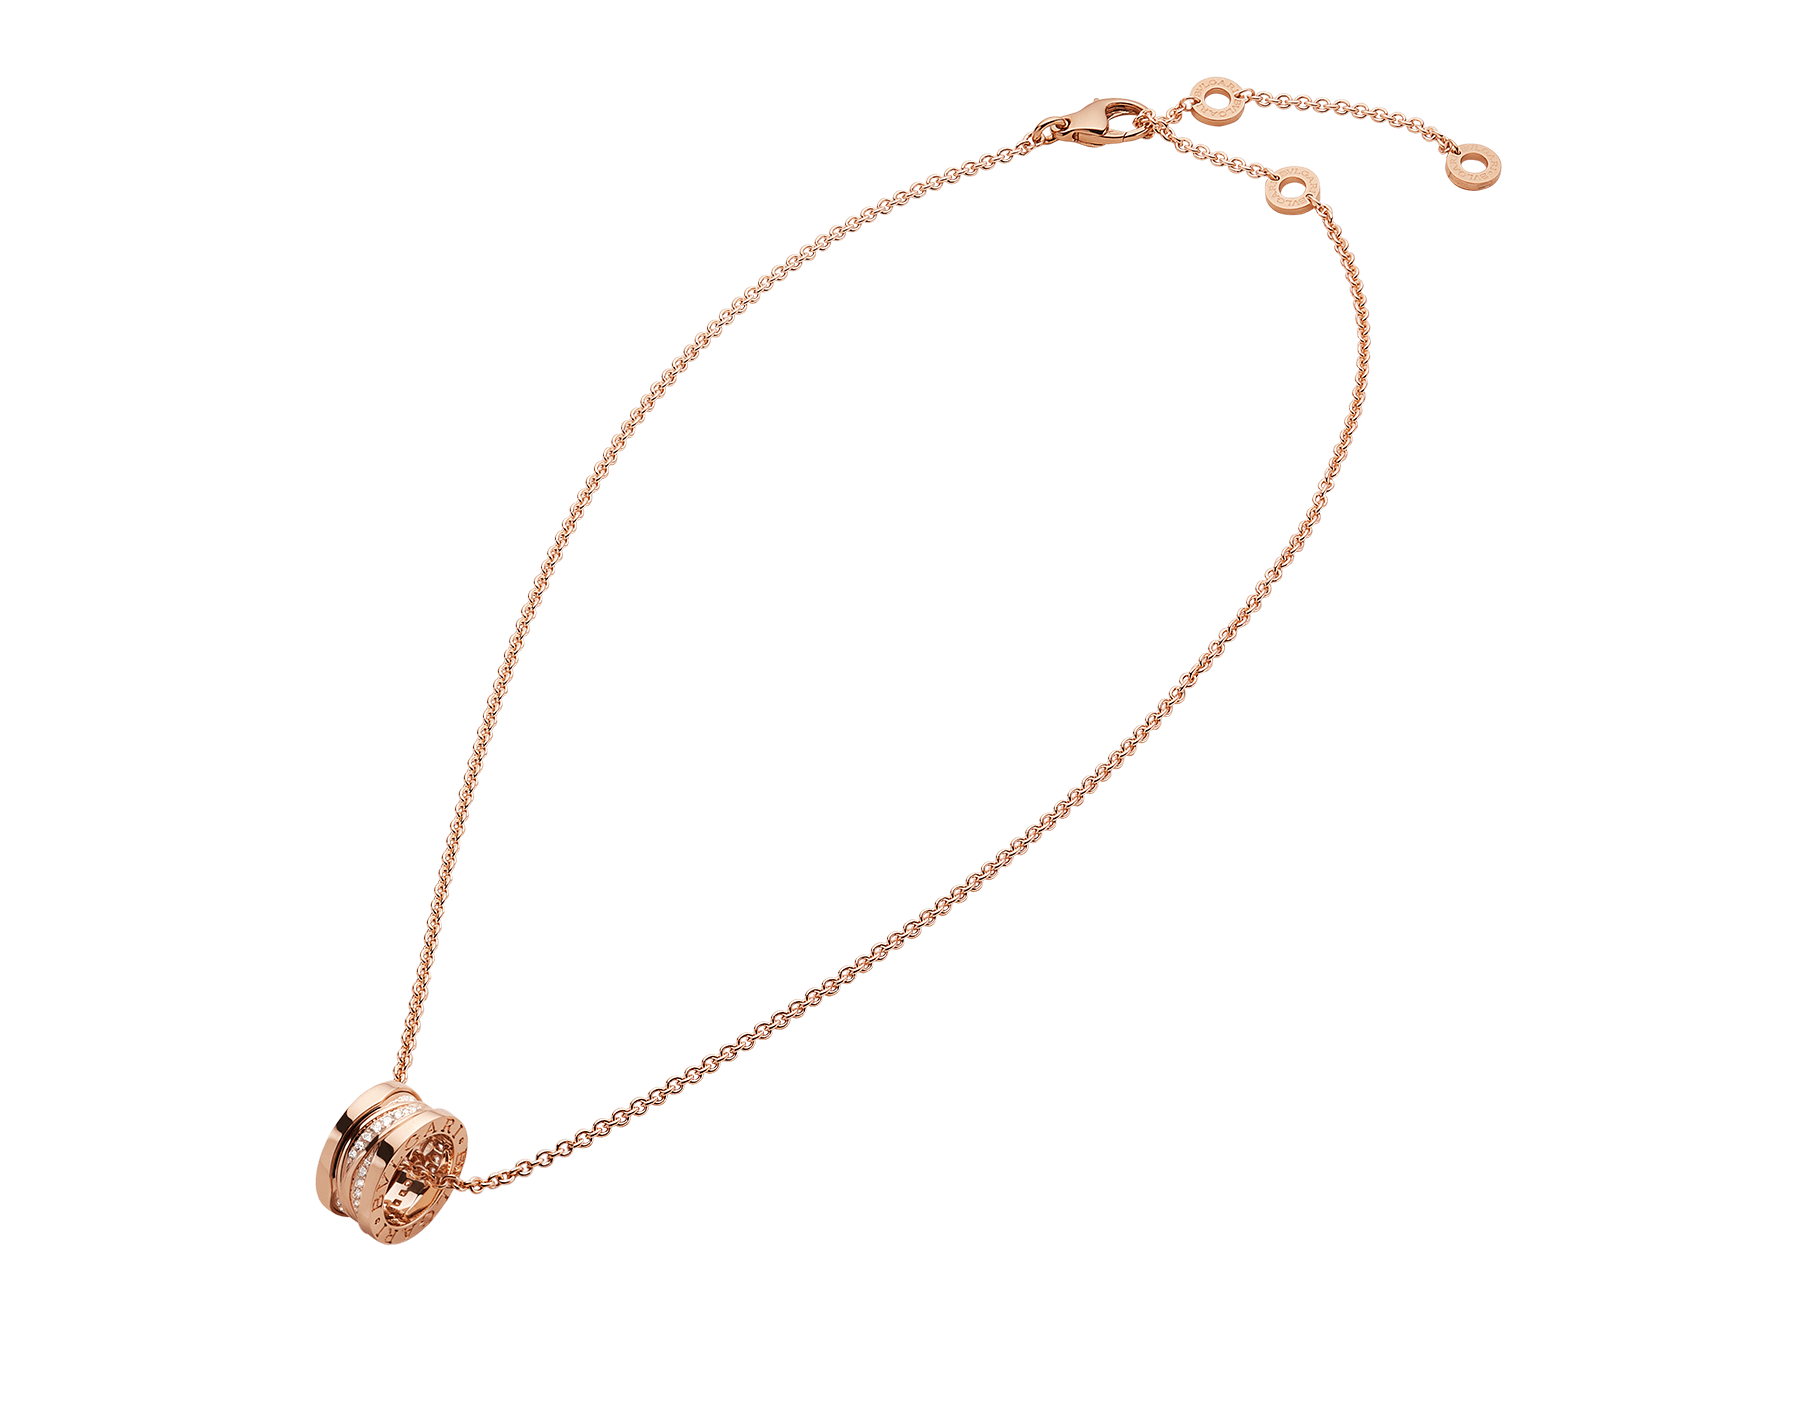 B.zero1 Design Legend necklace with 18 kt rose gold pendant set with pavé diamonds on the spiral and 18 kt rose gold chain. 355060 image 2